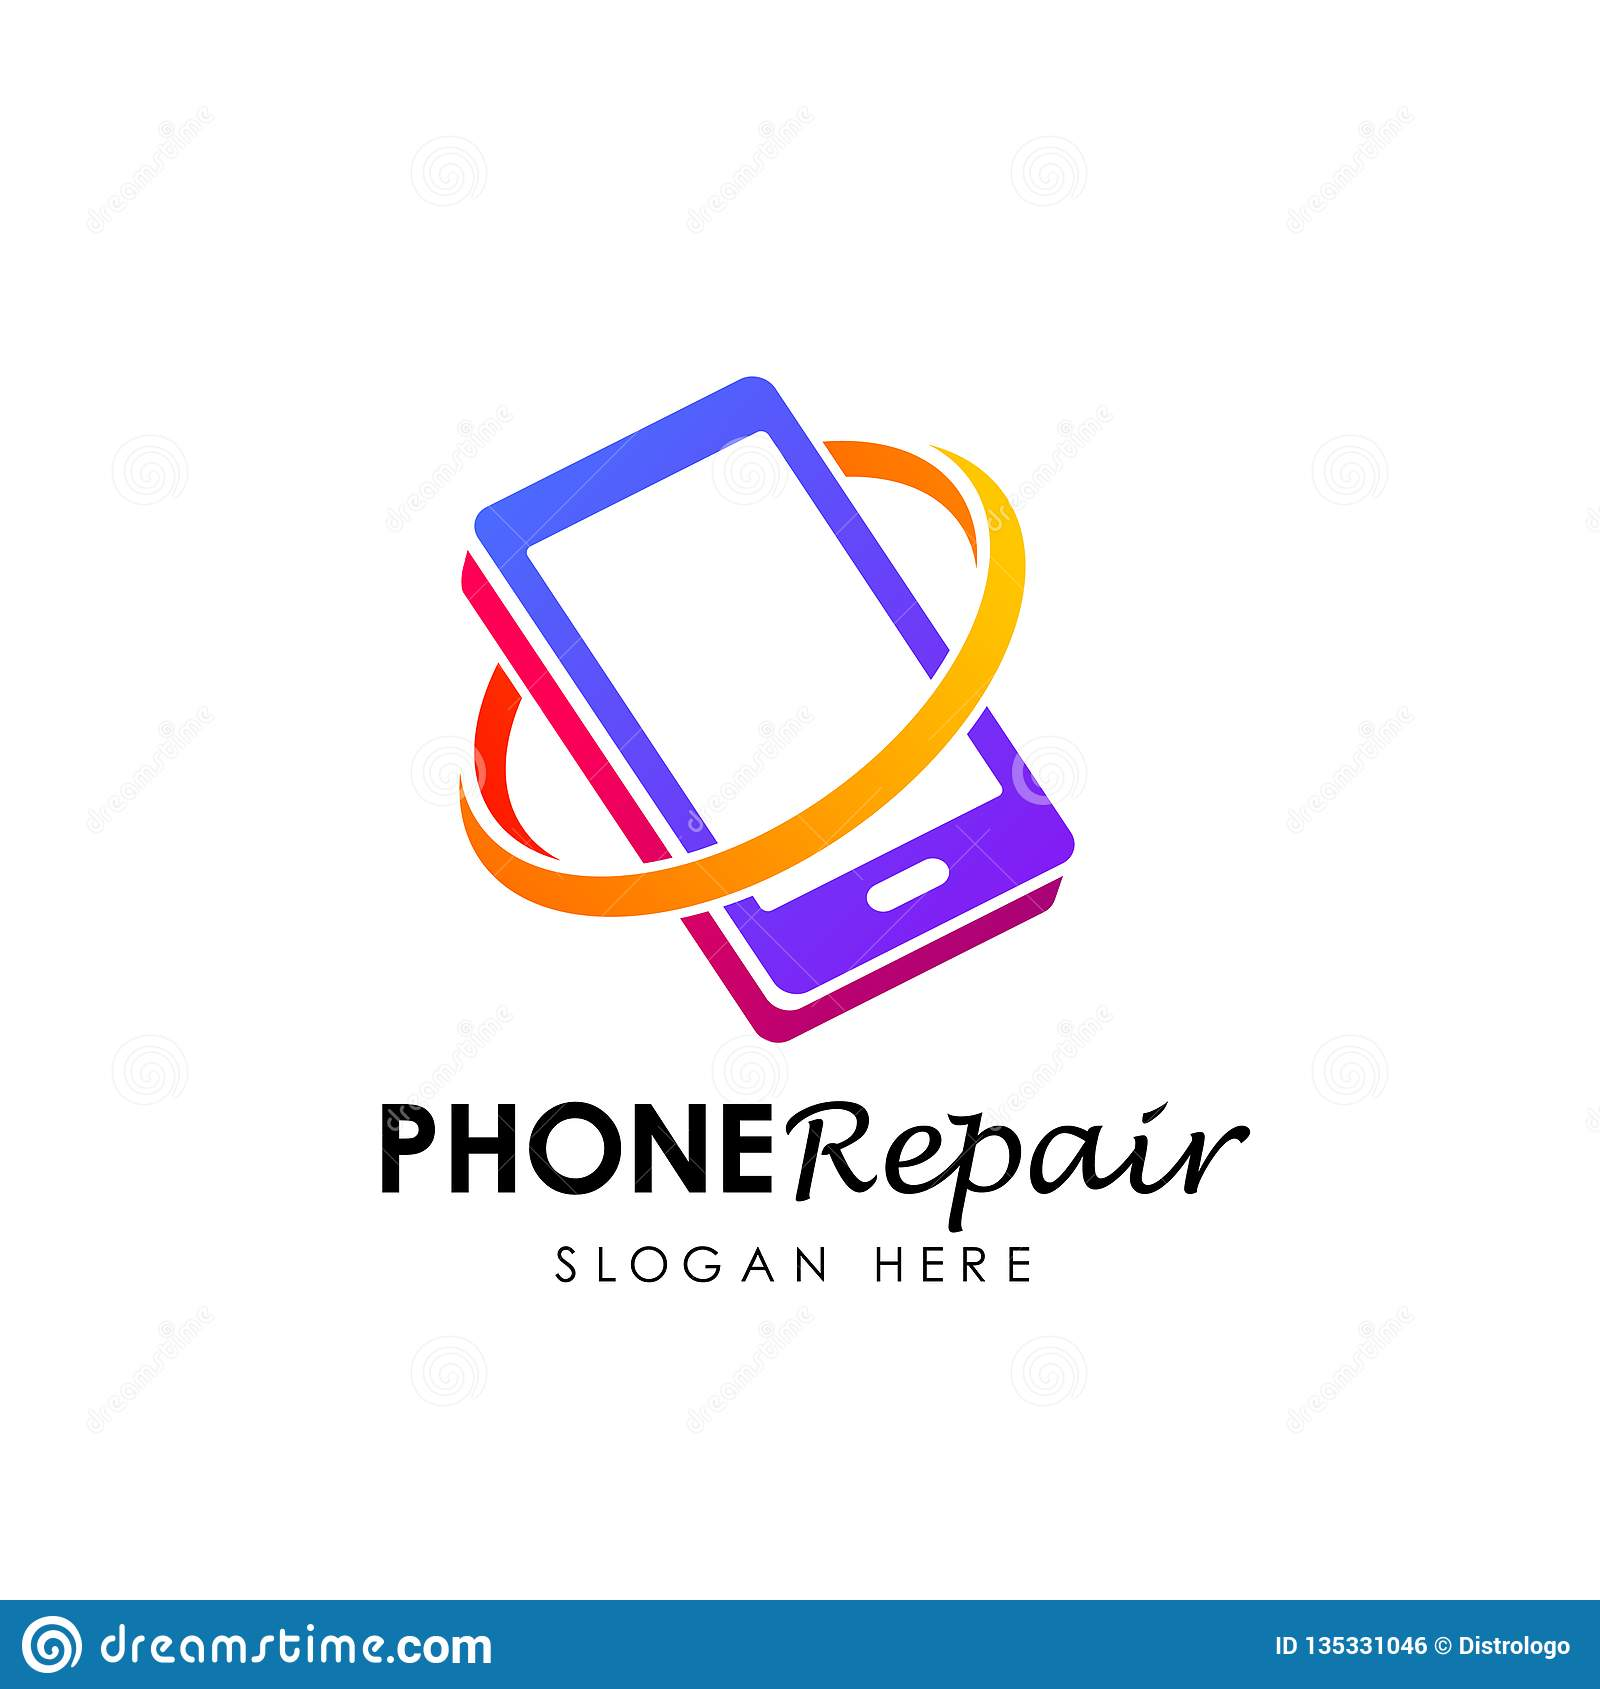 Phone Repair Logo Logo Design Phone Shop Logo Design Stock Vector Illustration Of Graphic Vector 135331046